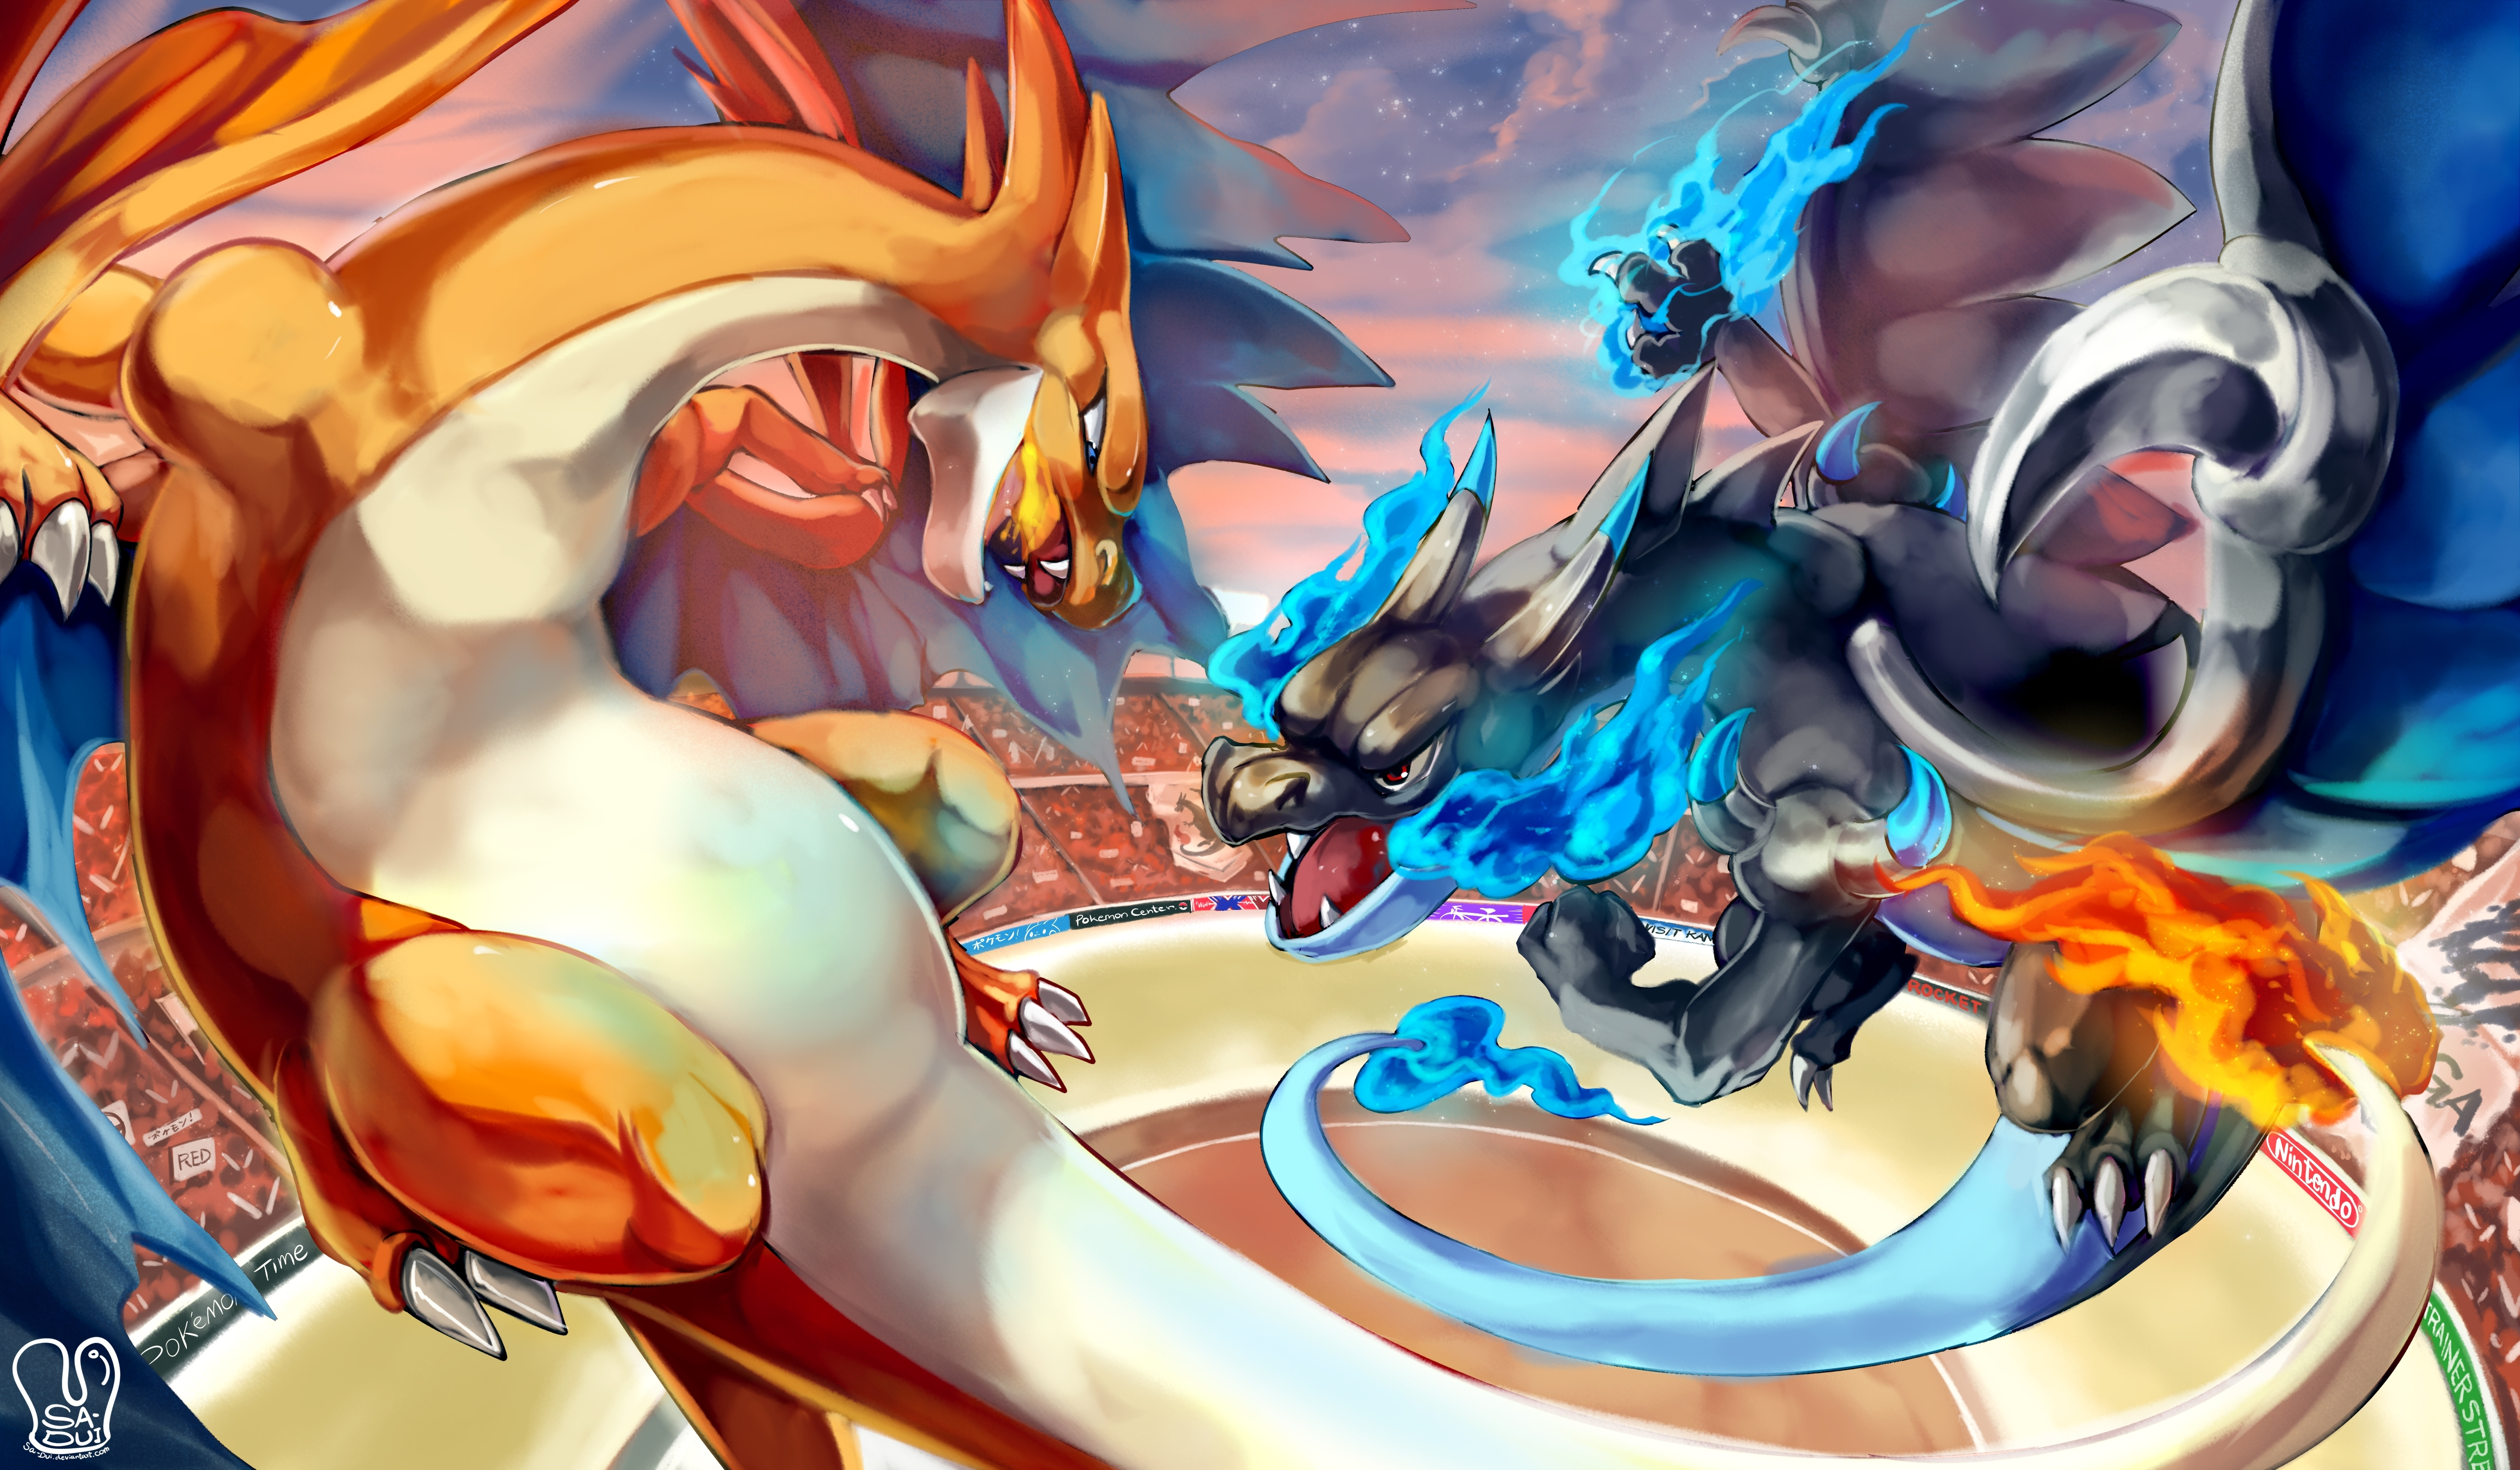 mega charizard y vs mega charizard x 5k retina ultra hd wallpaper